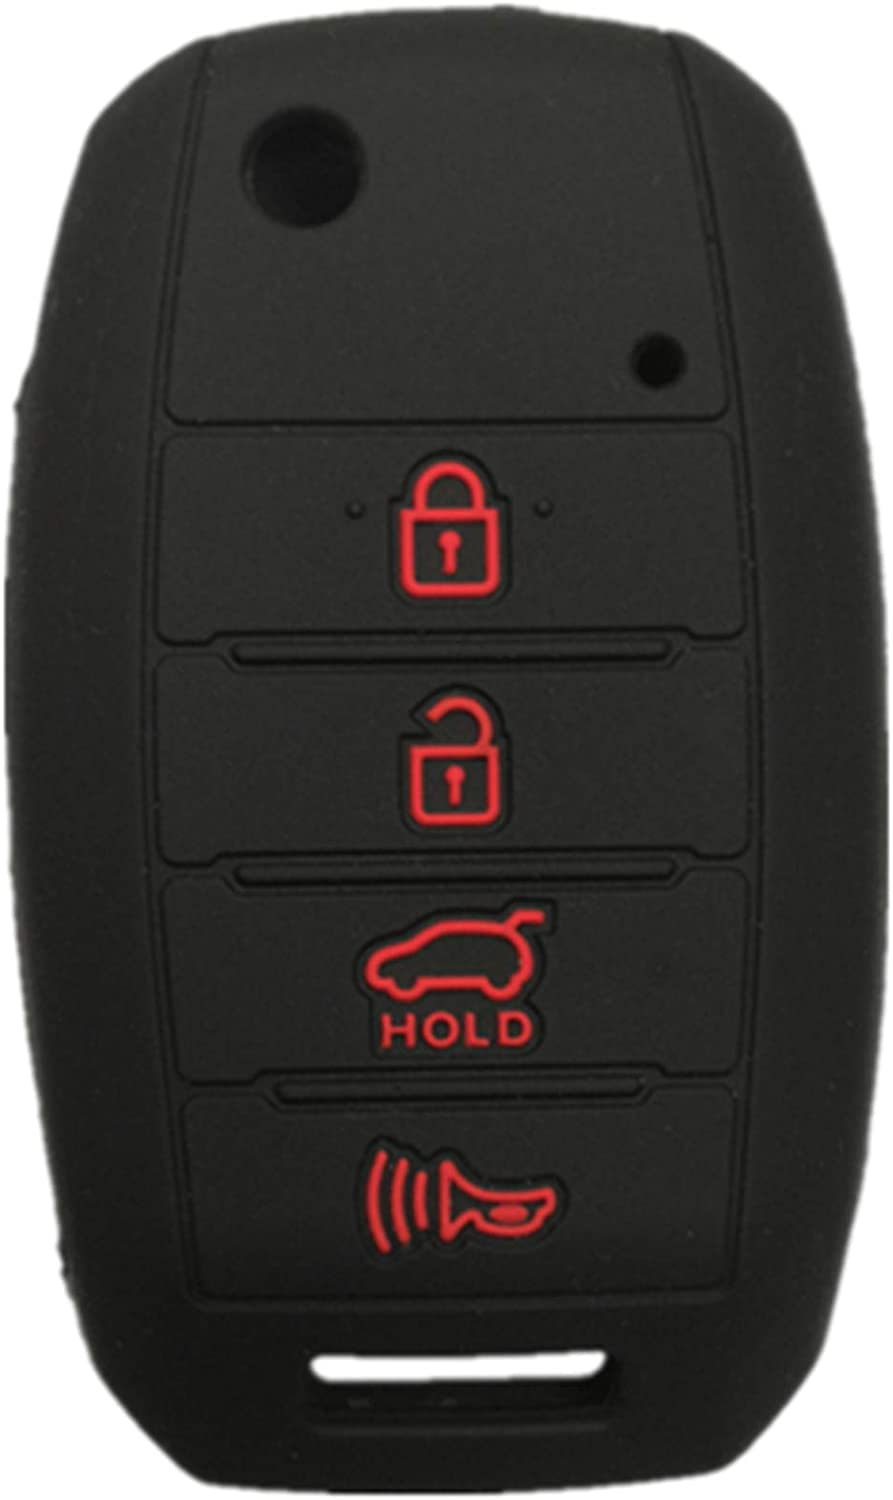 RUNZUIE Silicone Keyless Entry Remote Flip Key Fob Cover Case Protector Shell Fit for Kia Soul Optima Sorento Rio Forte Rio Sportage Black with Red 4 Buttons